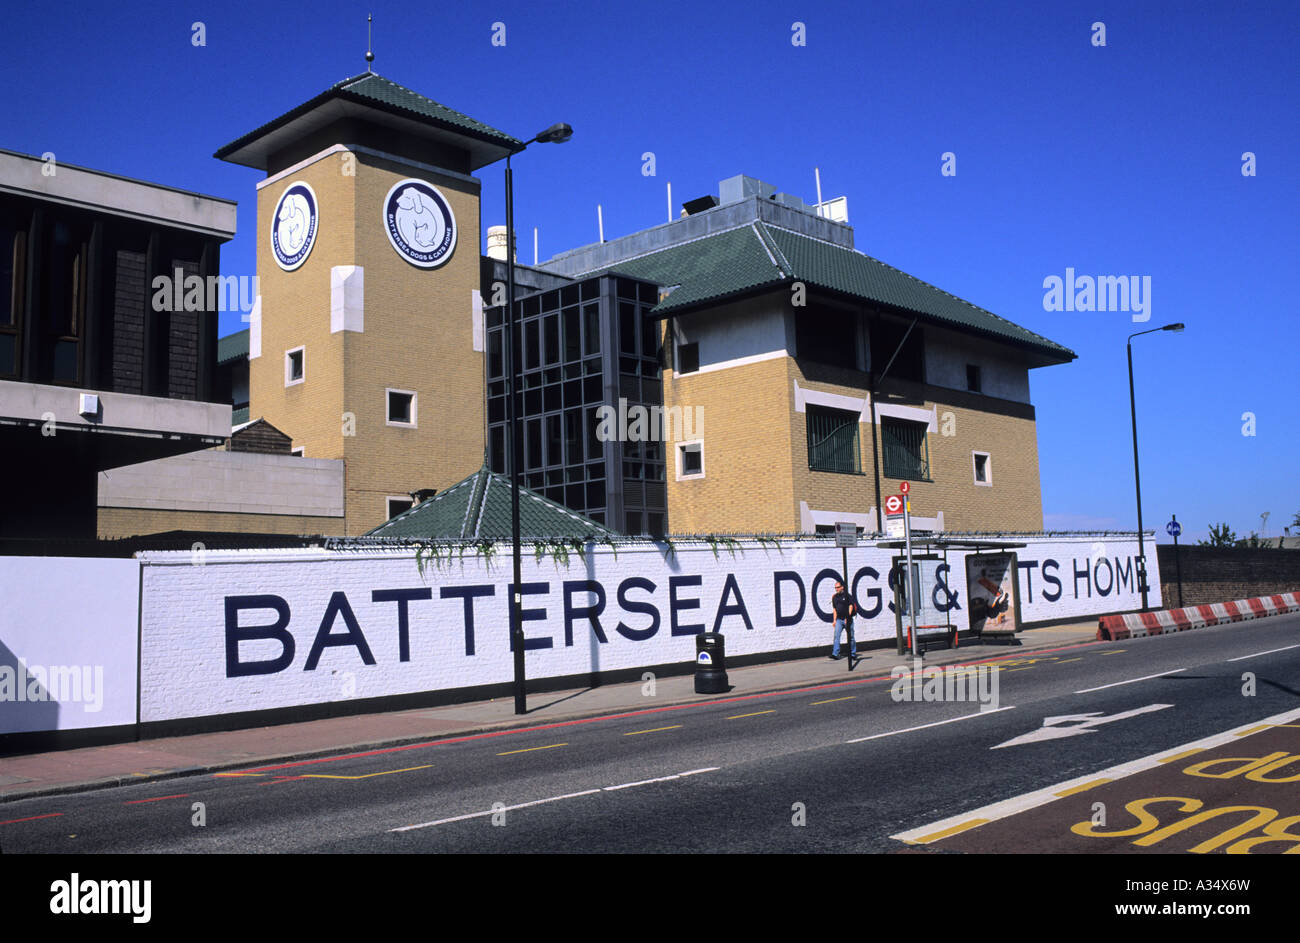 Battersea Dogs And Cats Home London Marathon